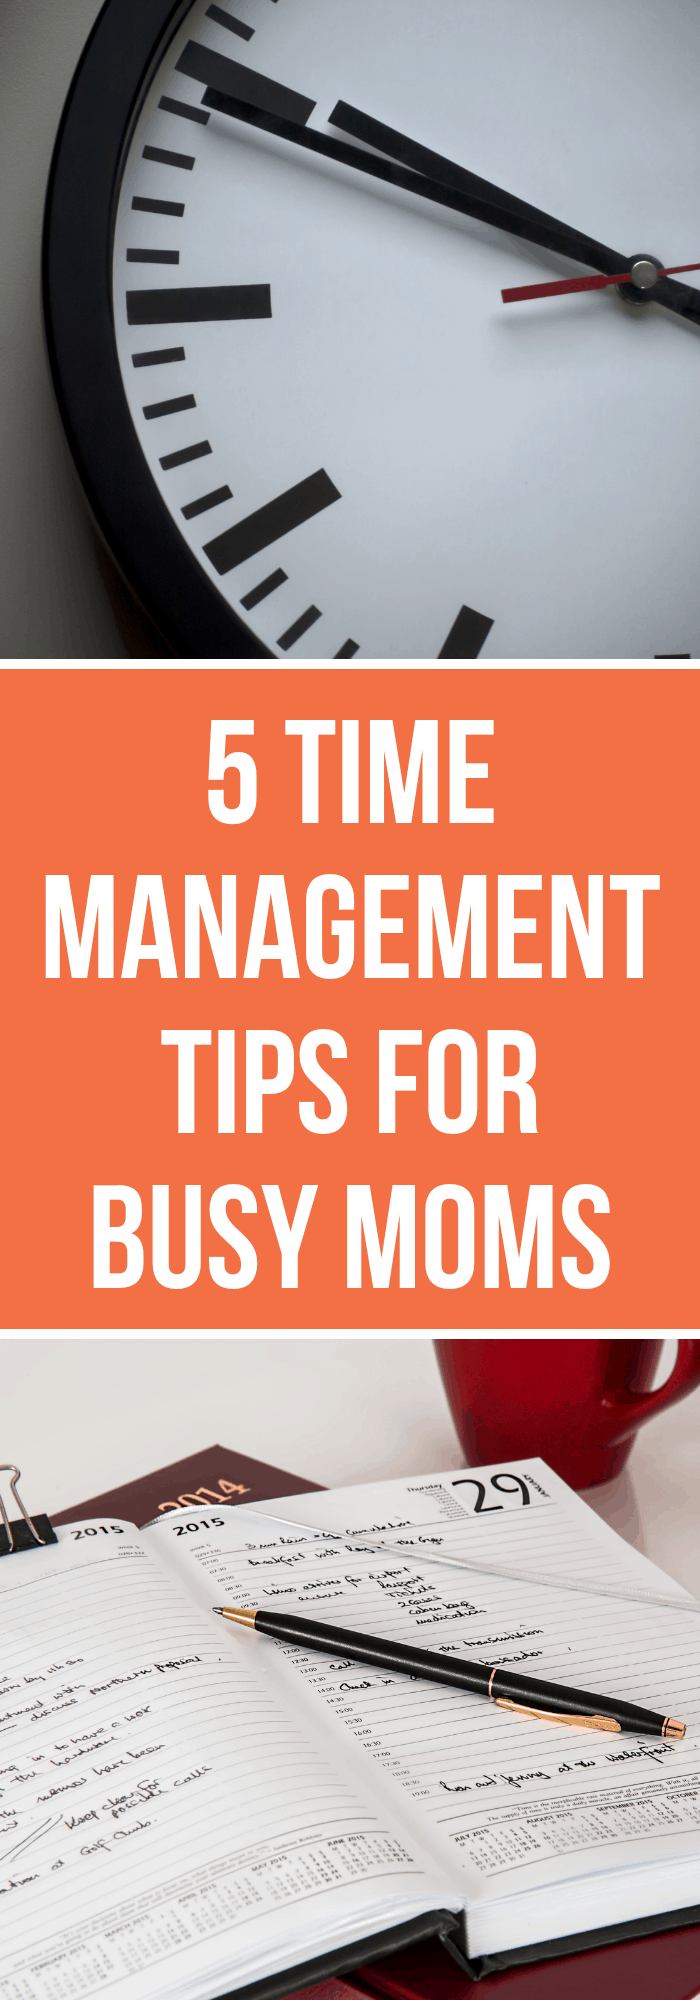 5 Time Management Tips for Busy Moms